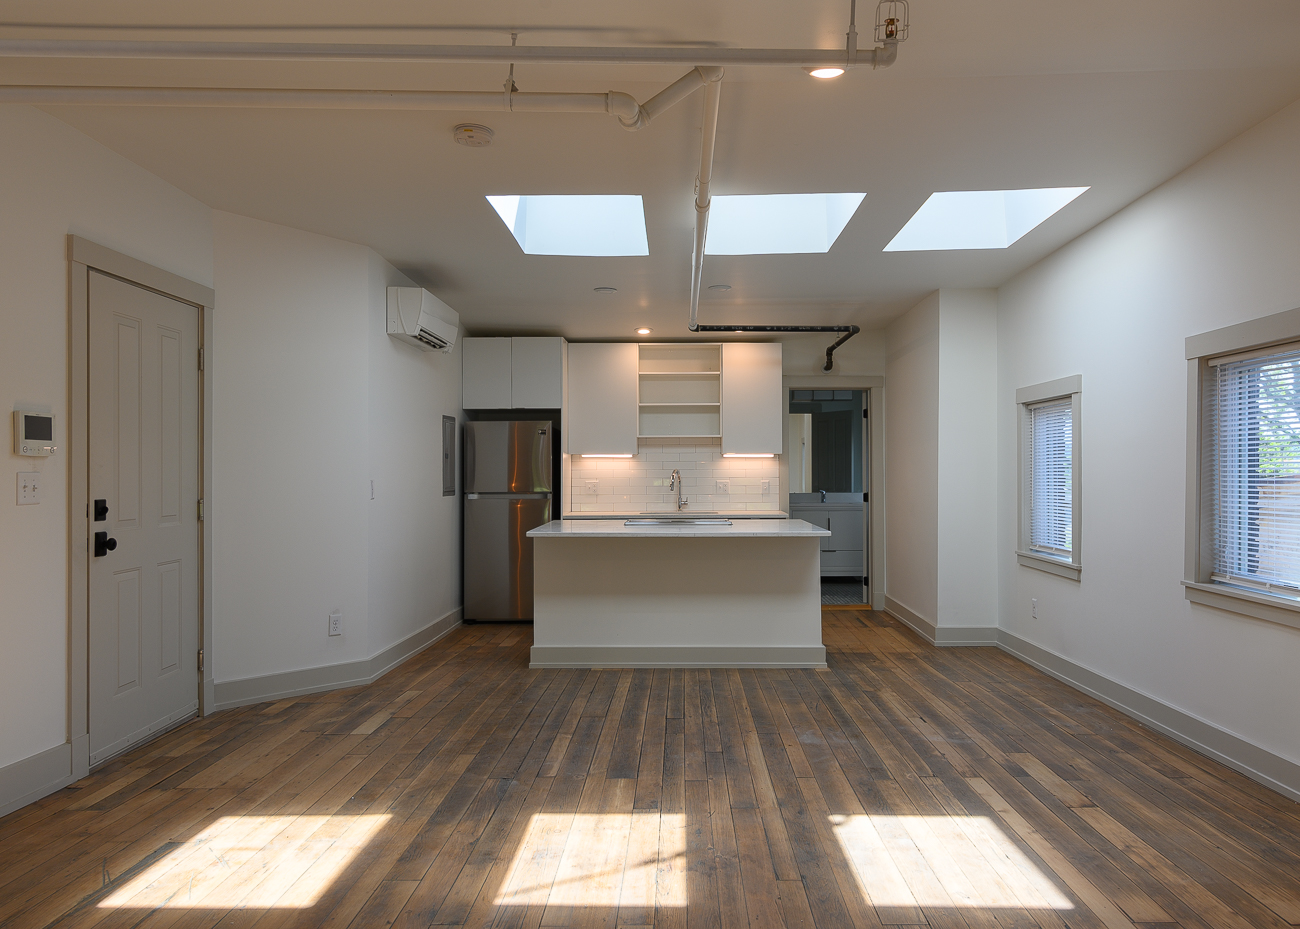 On the top floor, this 648-square-foot studio apartment rents for $850/month. Three skylights draw in natural light to illuminate the floor's original hardwood floors. The kitchen is outfitted with Samsung appliances, and a large bathroom with a shower stall and an all-in-one LG washer/dryer unit is concealed behind a closet door. A sloping ceiling adds character to the living/bedroom with industrial wall sconces to help light the corner between windows. Contact Greg Cole at gcole@theacanthusgroup.com to inquire about renting at 1925 Vine Street. / Image: Phil Armstrong, Cincinnati Refined // Published: 5.9.19